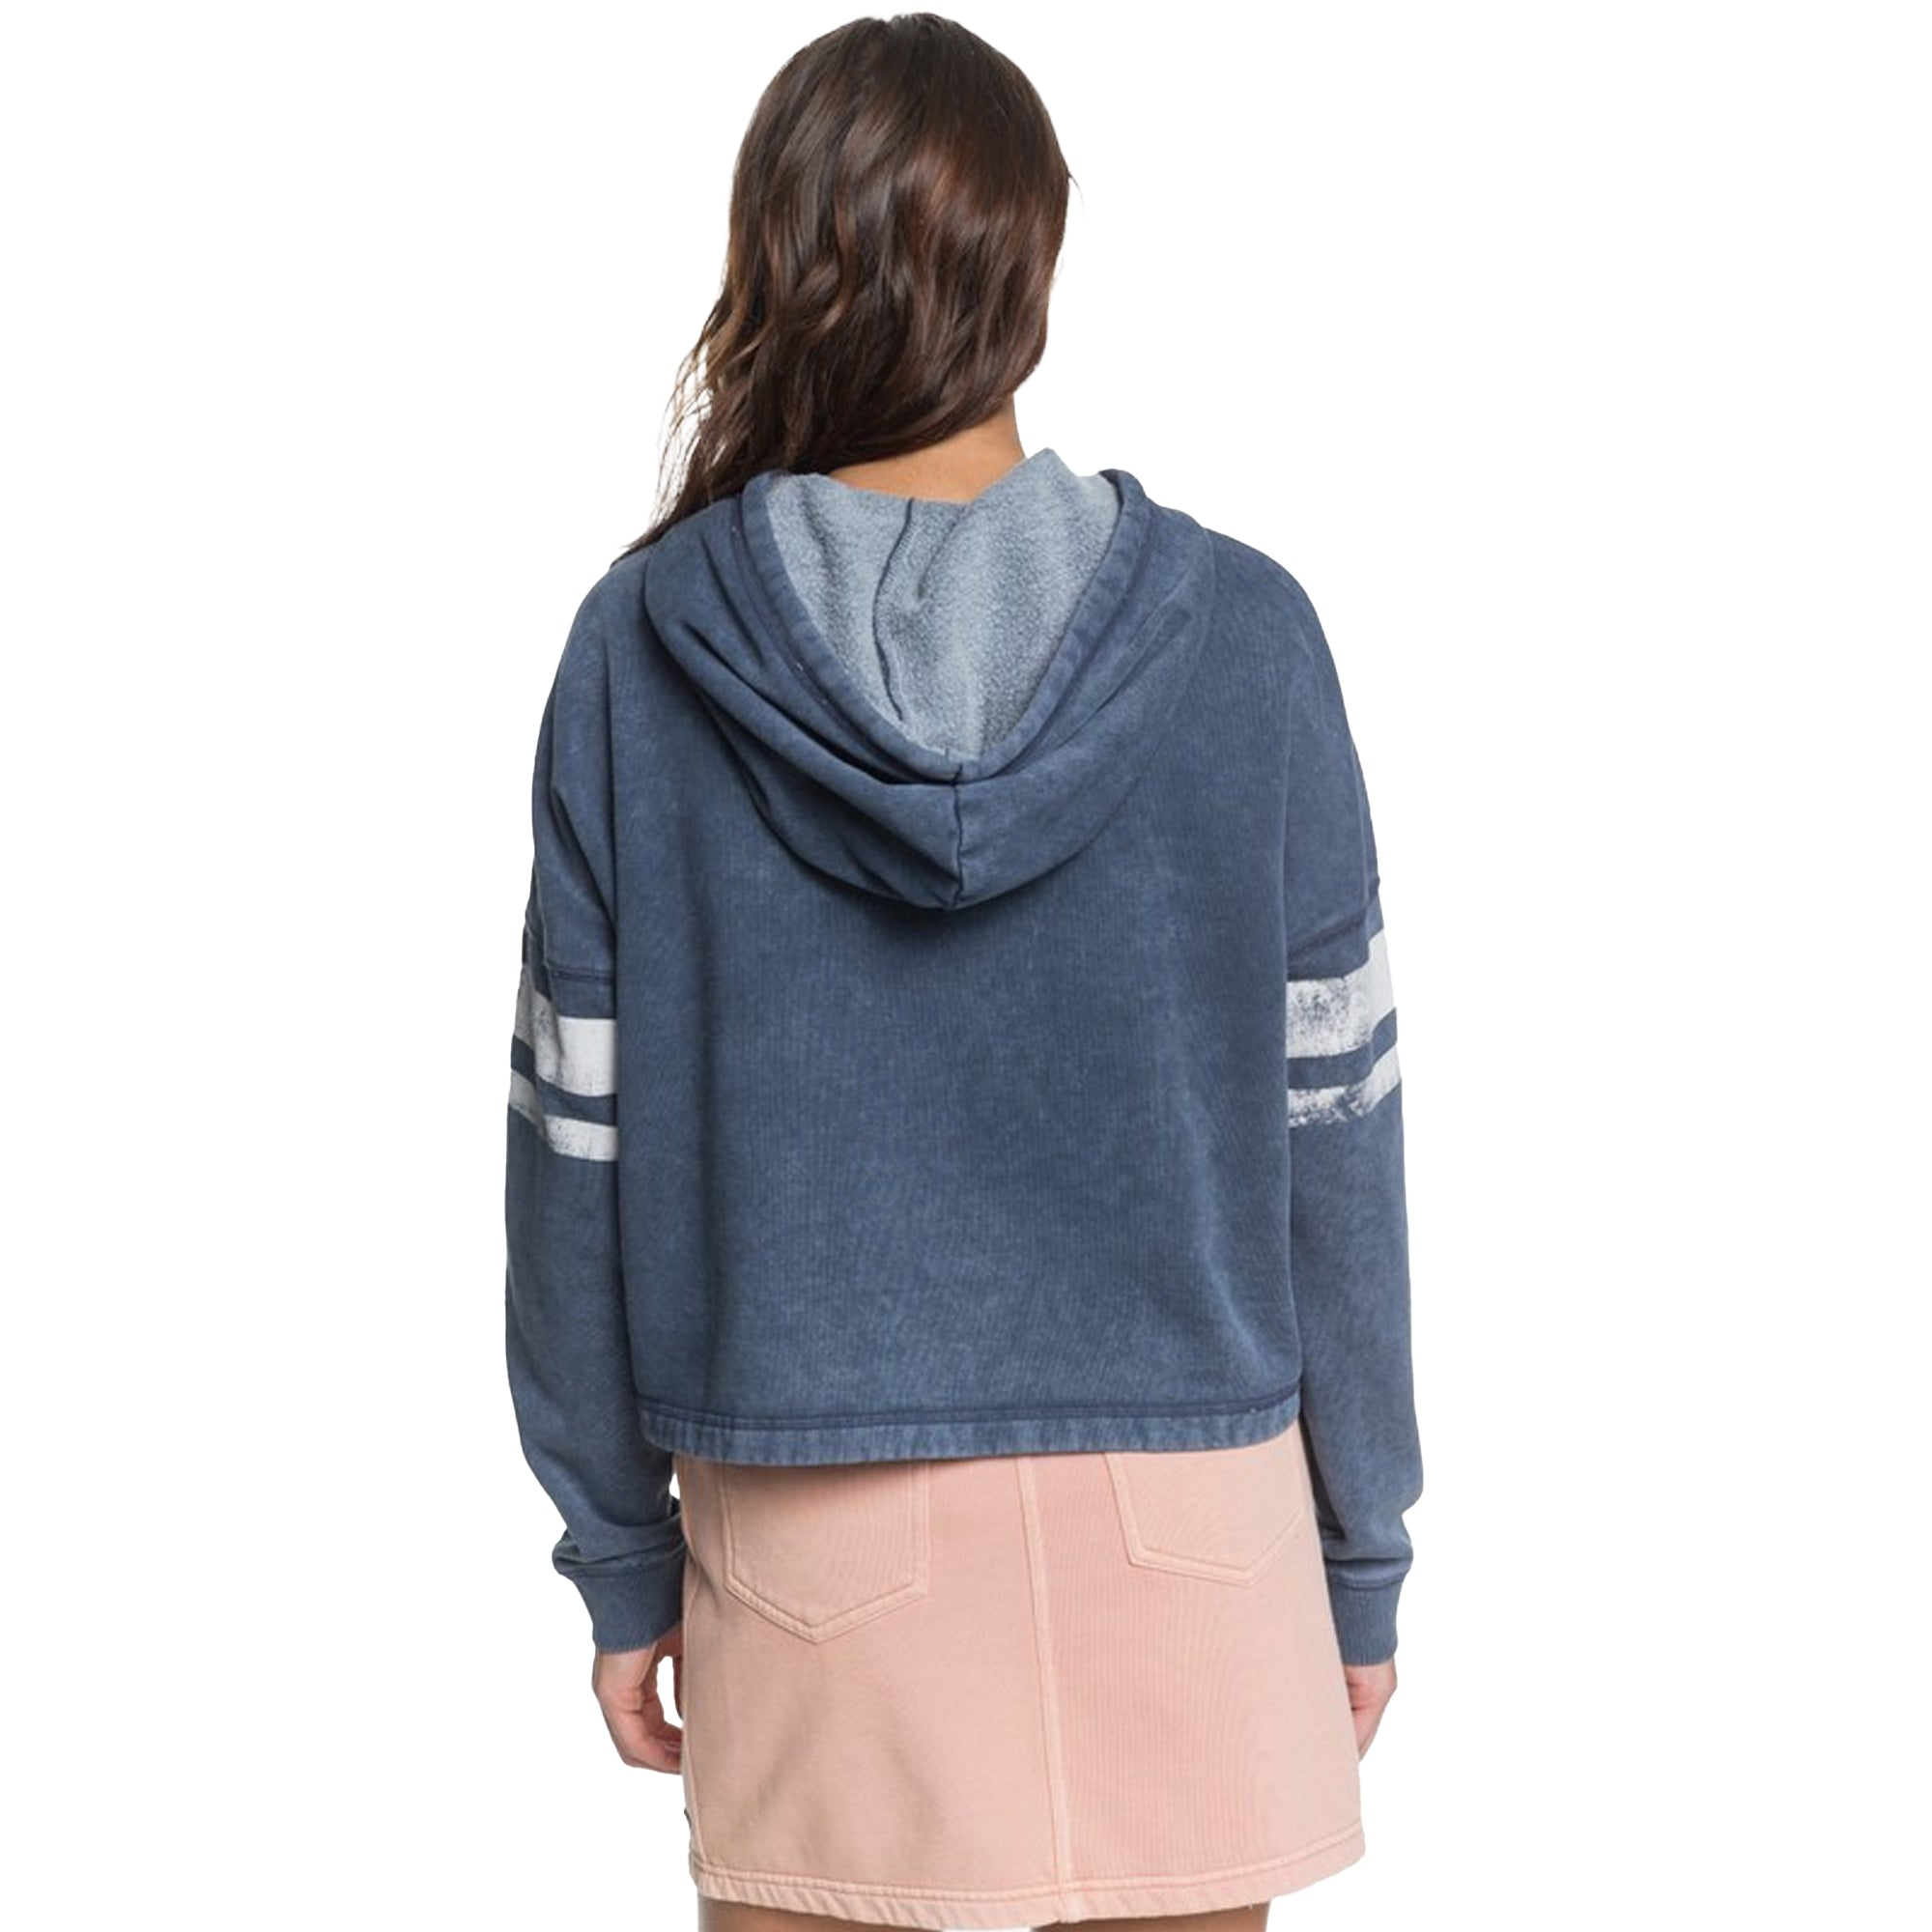 Roxy Free In The Sea Women's Cropped Hoodie